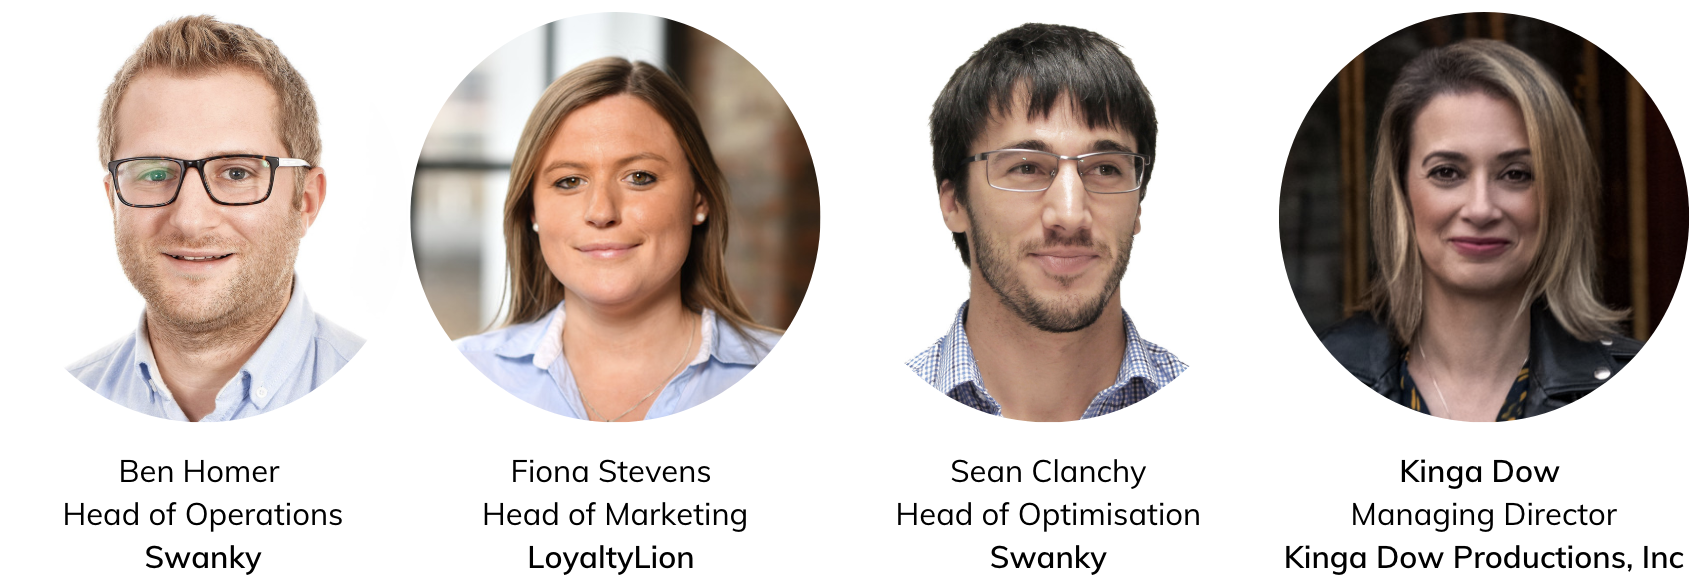 headshot of host and speakers